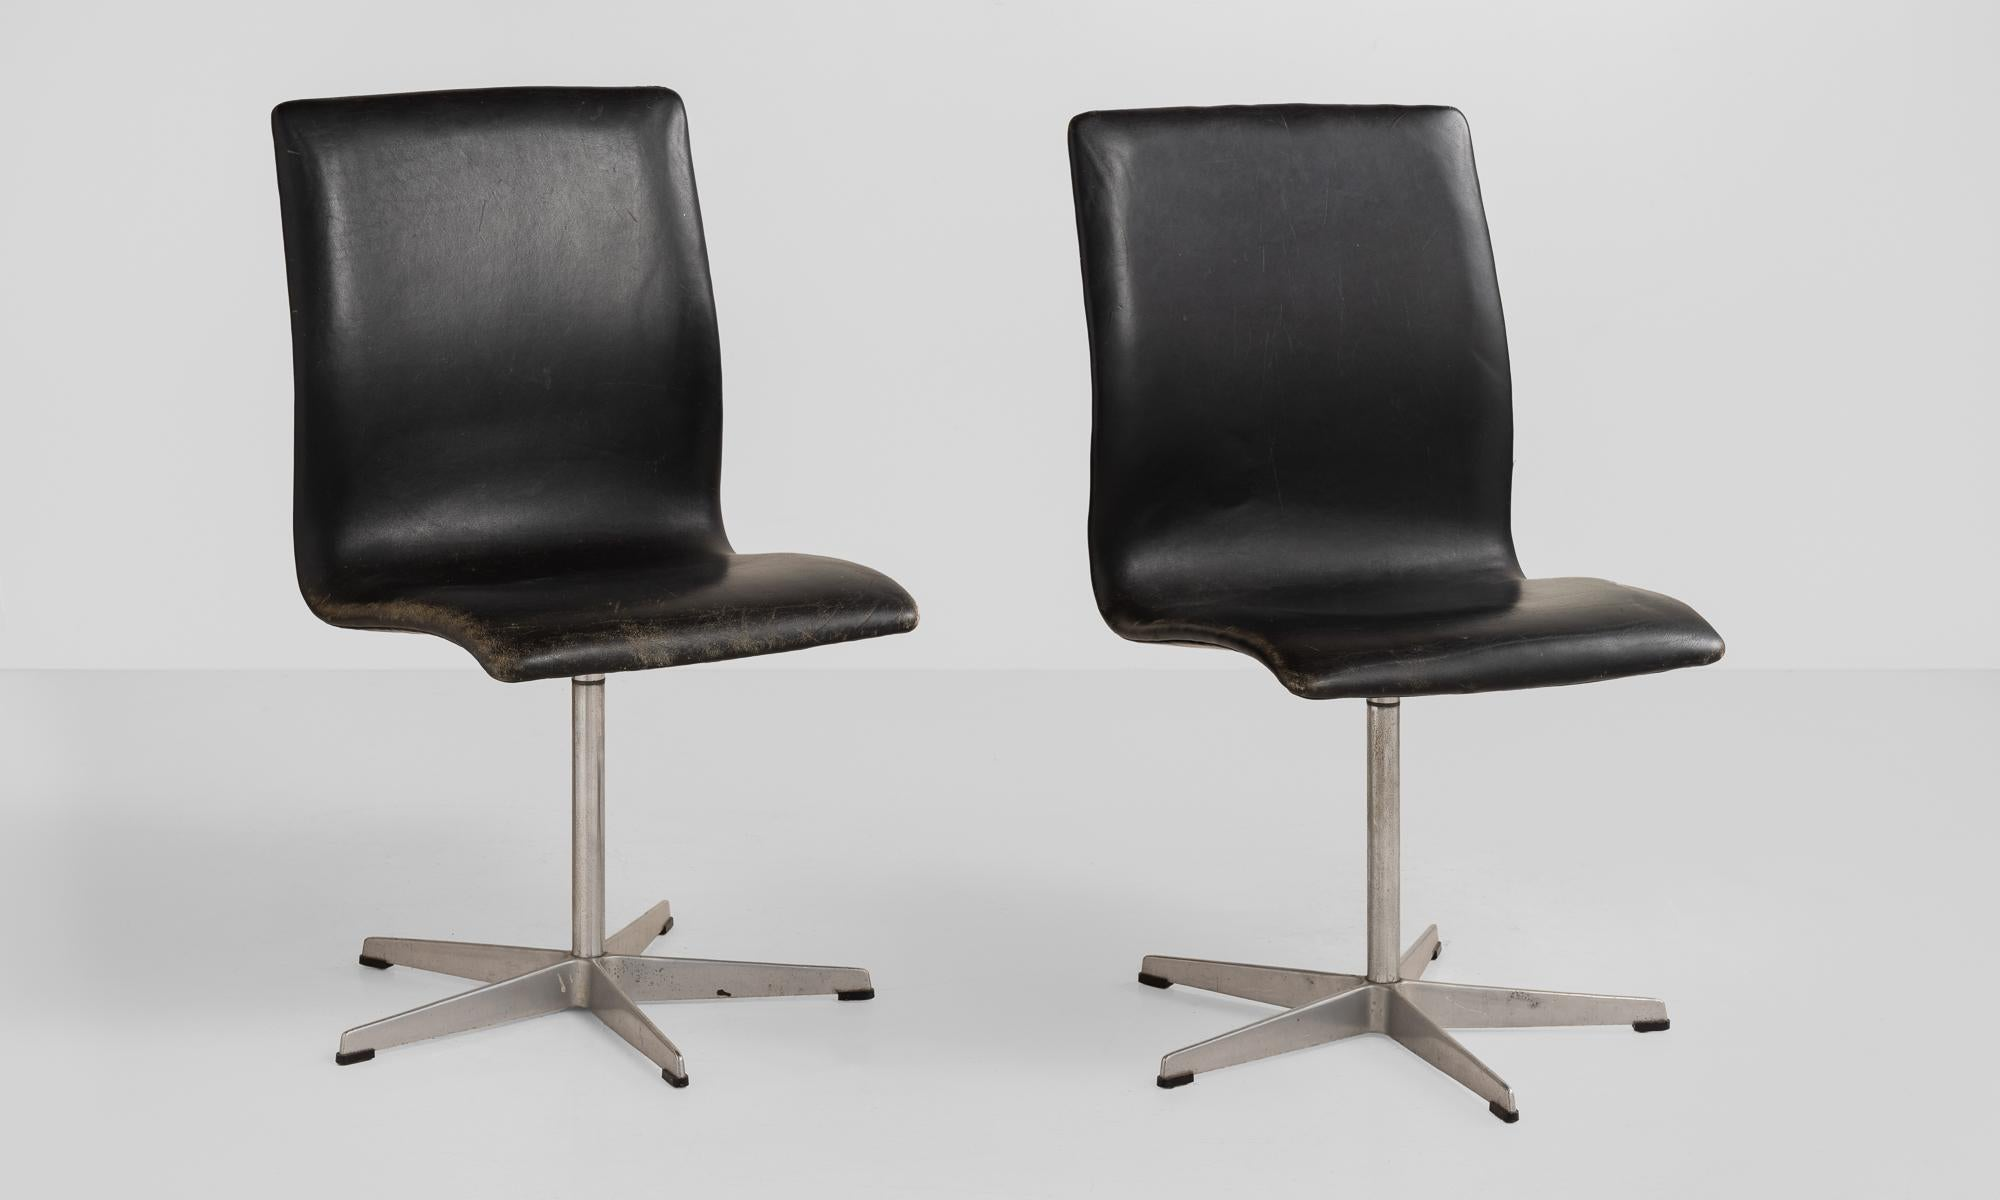 Arne Jacobsen Leather Oxford Chairs By Fritz Hansen, Denmark, Circa 1960.  Original Black